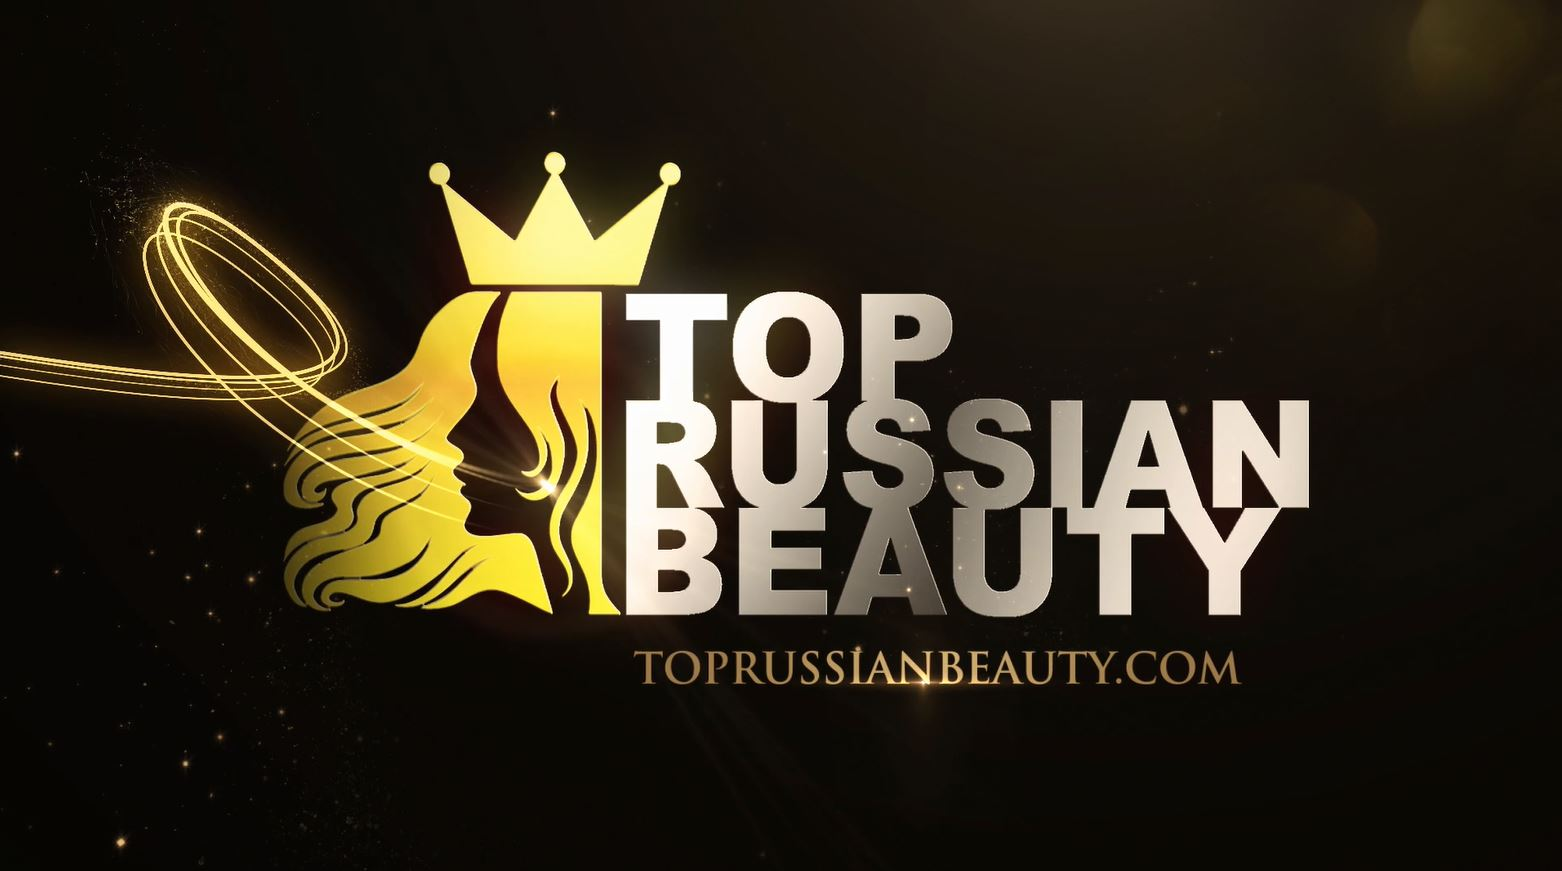 2017 TOP RUSSIAN BEAUTY Model contest - REGISTRATION IS NOW OPEN!